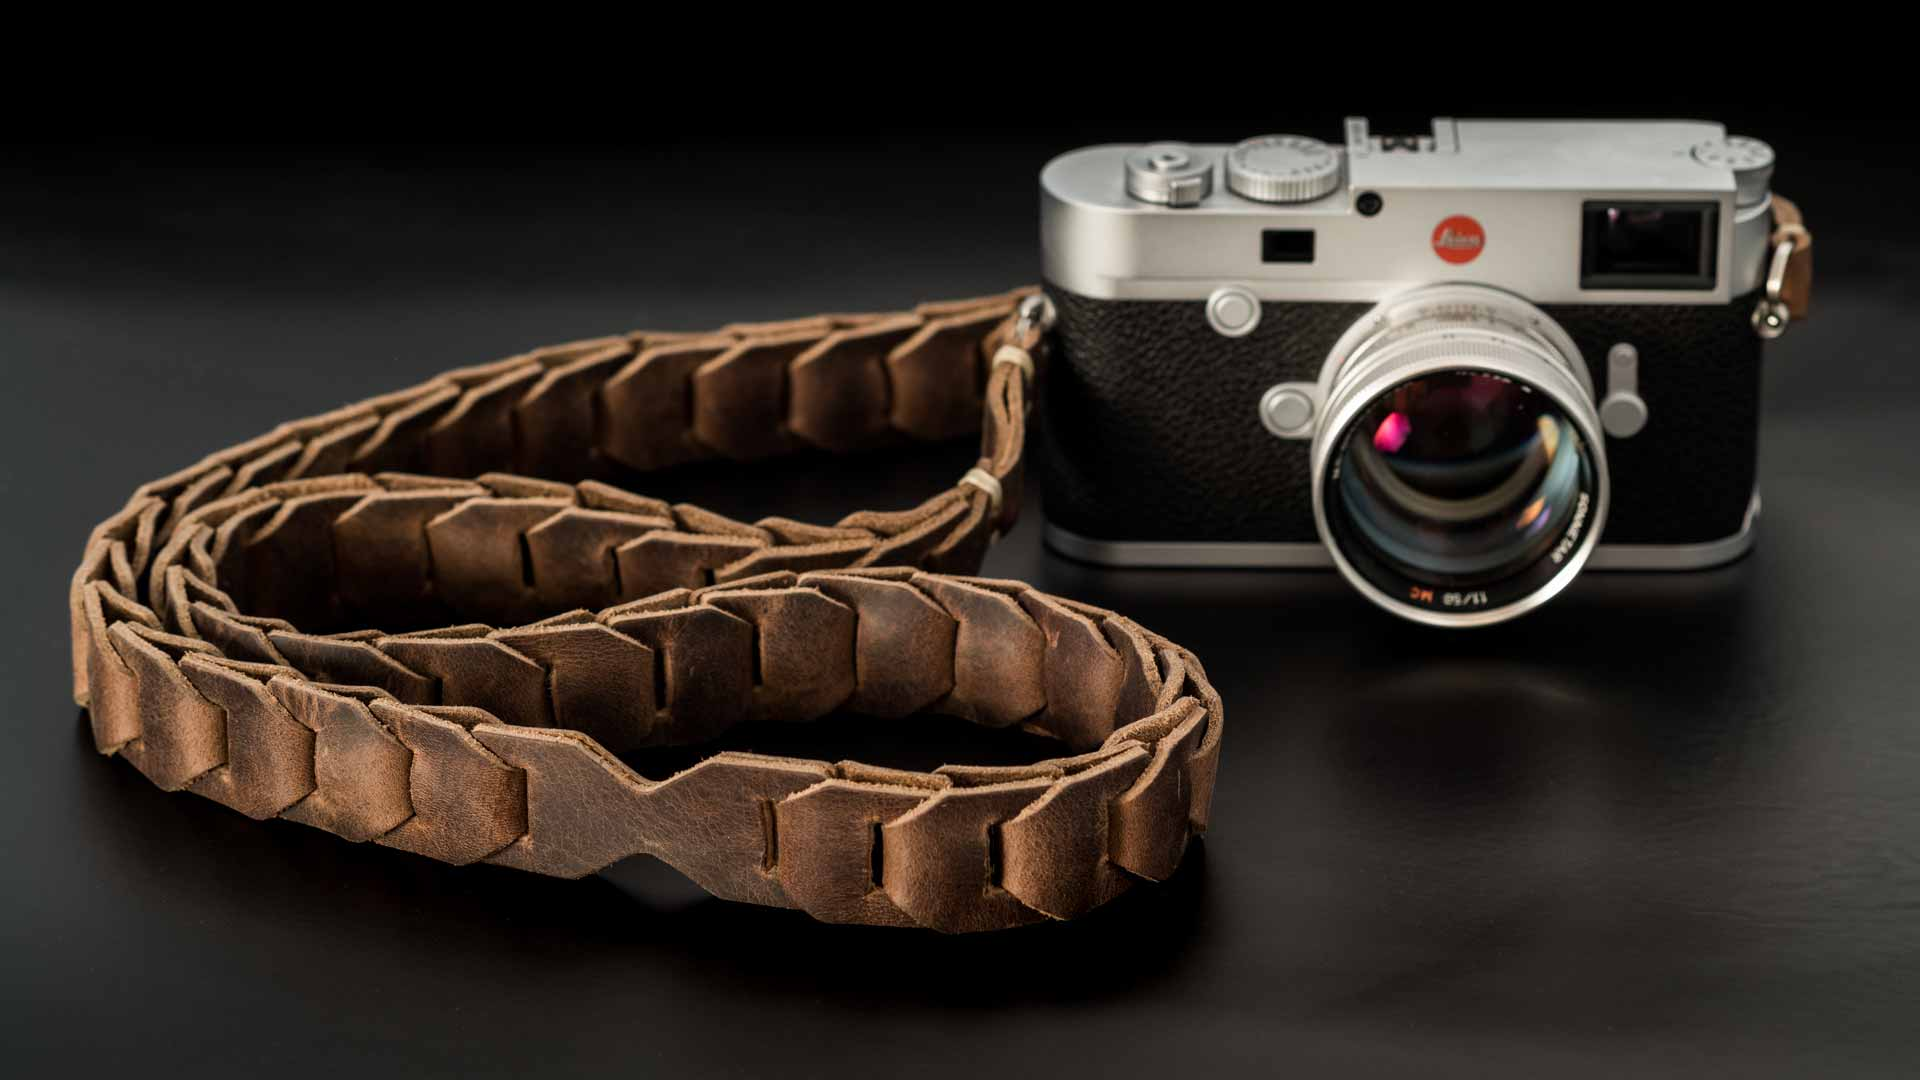 leica m strap, leather camera strap, handmade leather camera strap, leica camera strap, mirrorless camera strap, handmade camera strap, brown camera strap